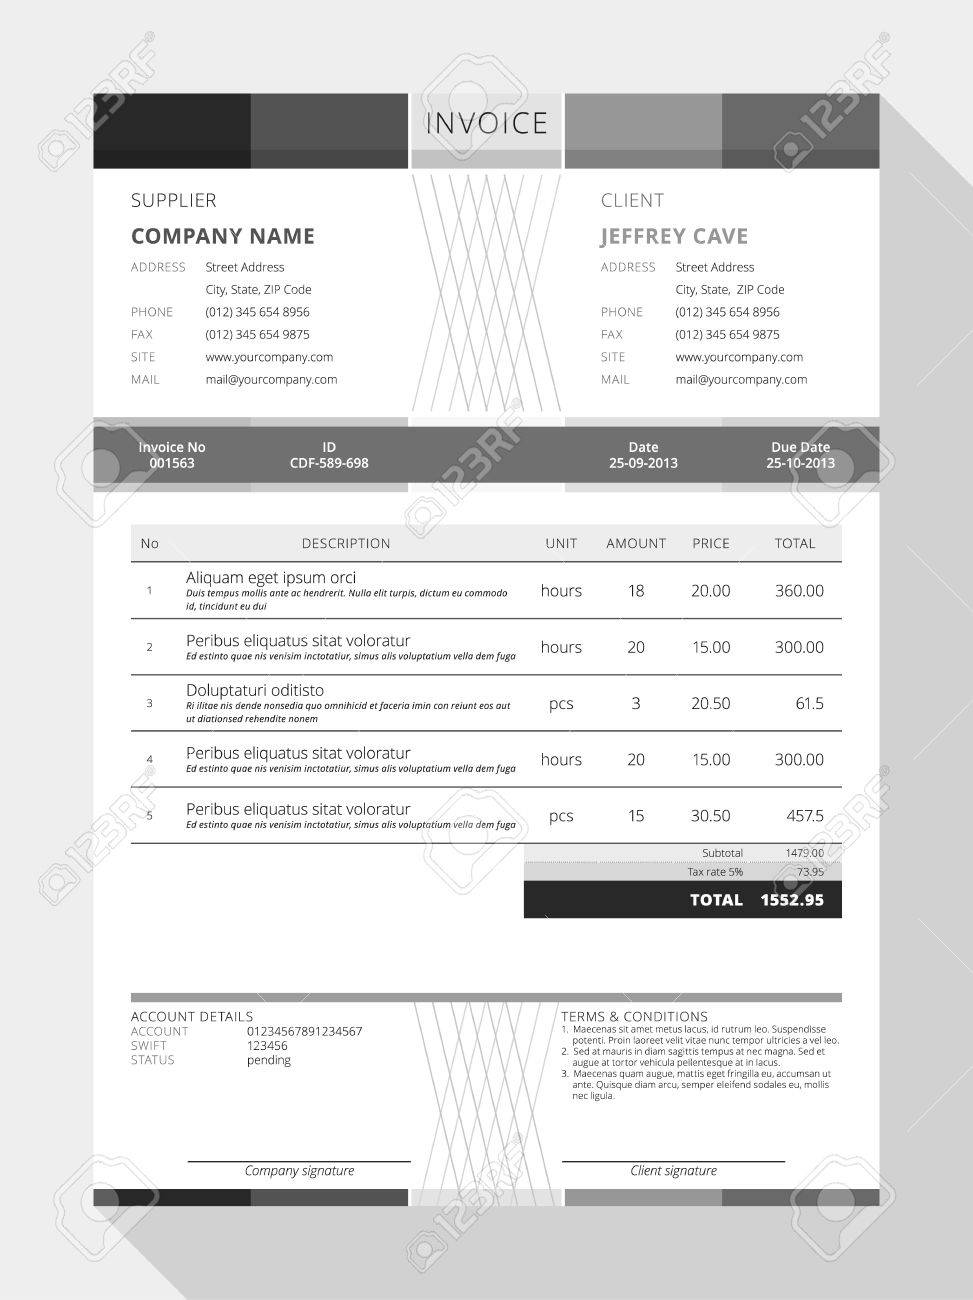 Darkfaderus  Prepossessing Design An Invoice  Professional Graphic Design Invoice  With Heavenly Vector Customizable Invoice Form Template Design Vector   Design An Invoice With Delectable American Express Receipts Also Free Rent Receipts In Addition Thunderbird Read Receipt And Receipt For Payment Received As Well As Receipt Of Cash Additionally Nonreceipt Of Pci Validation From Happytomco With Darkfaderus  Heavenly Design An Invoice  Professional Graphic Design Invoice  With Delectable Vector Customizable Invoice Form Template Design Vector   Design An Invoice And Prepossessing American Express Receipts Also Free Rent Receipts In Addition Thunderbird Read Receipt From Happytomco